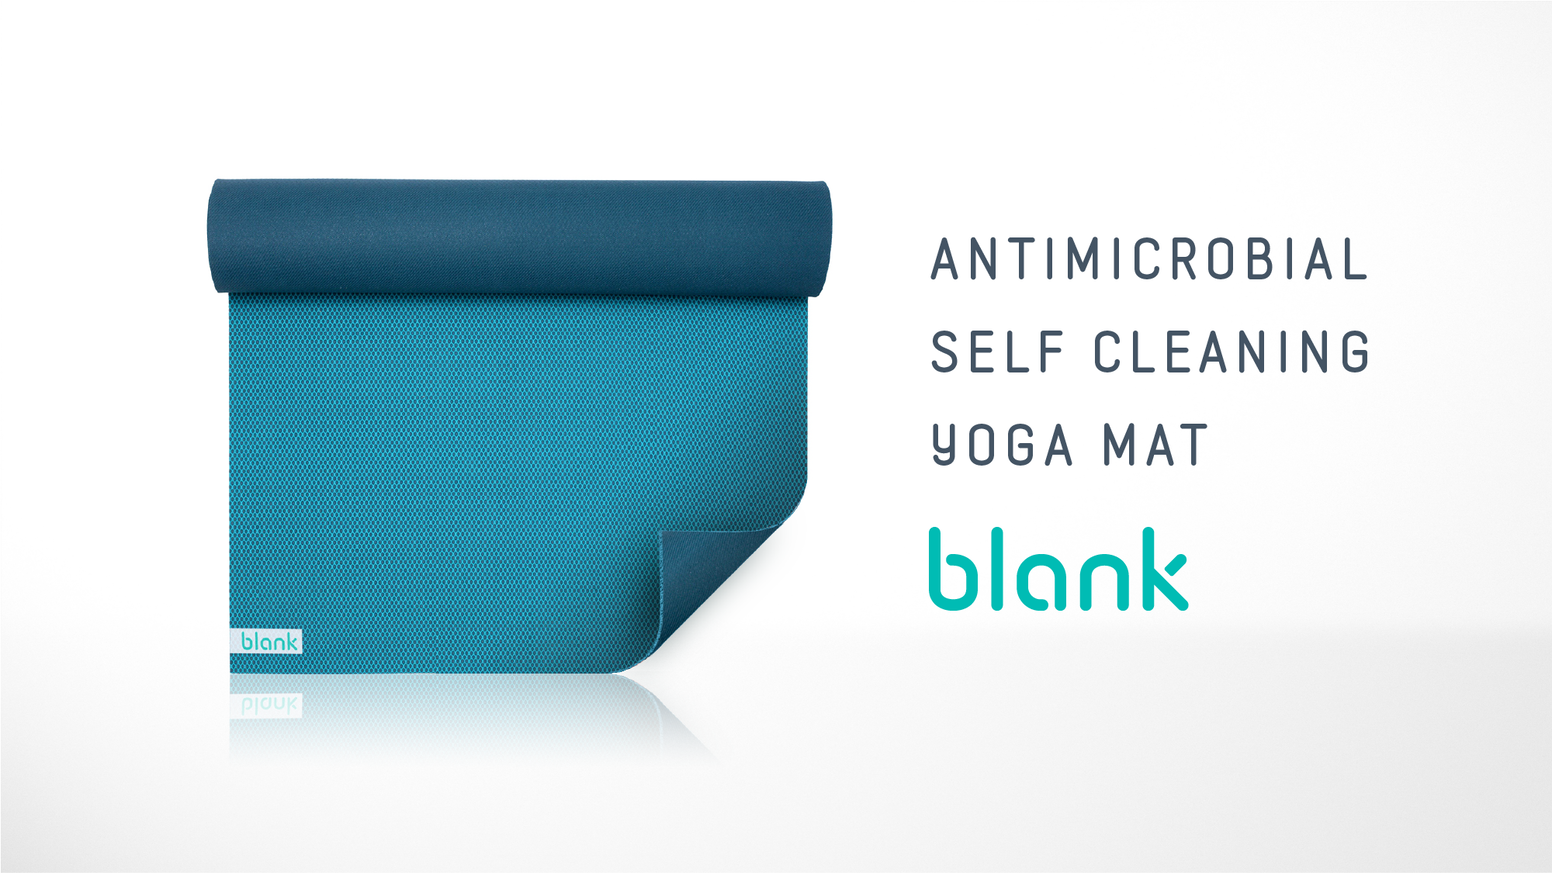 The first antimicrobial silver-infused yoga mat that doesn't stink no matter how intense you practice.